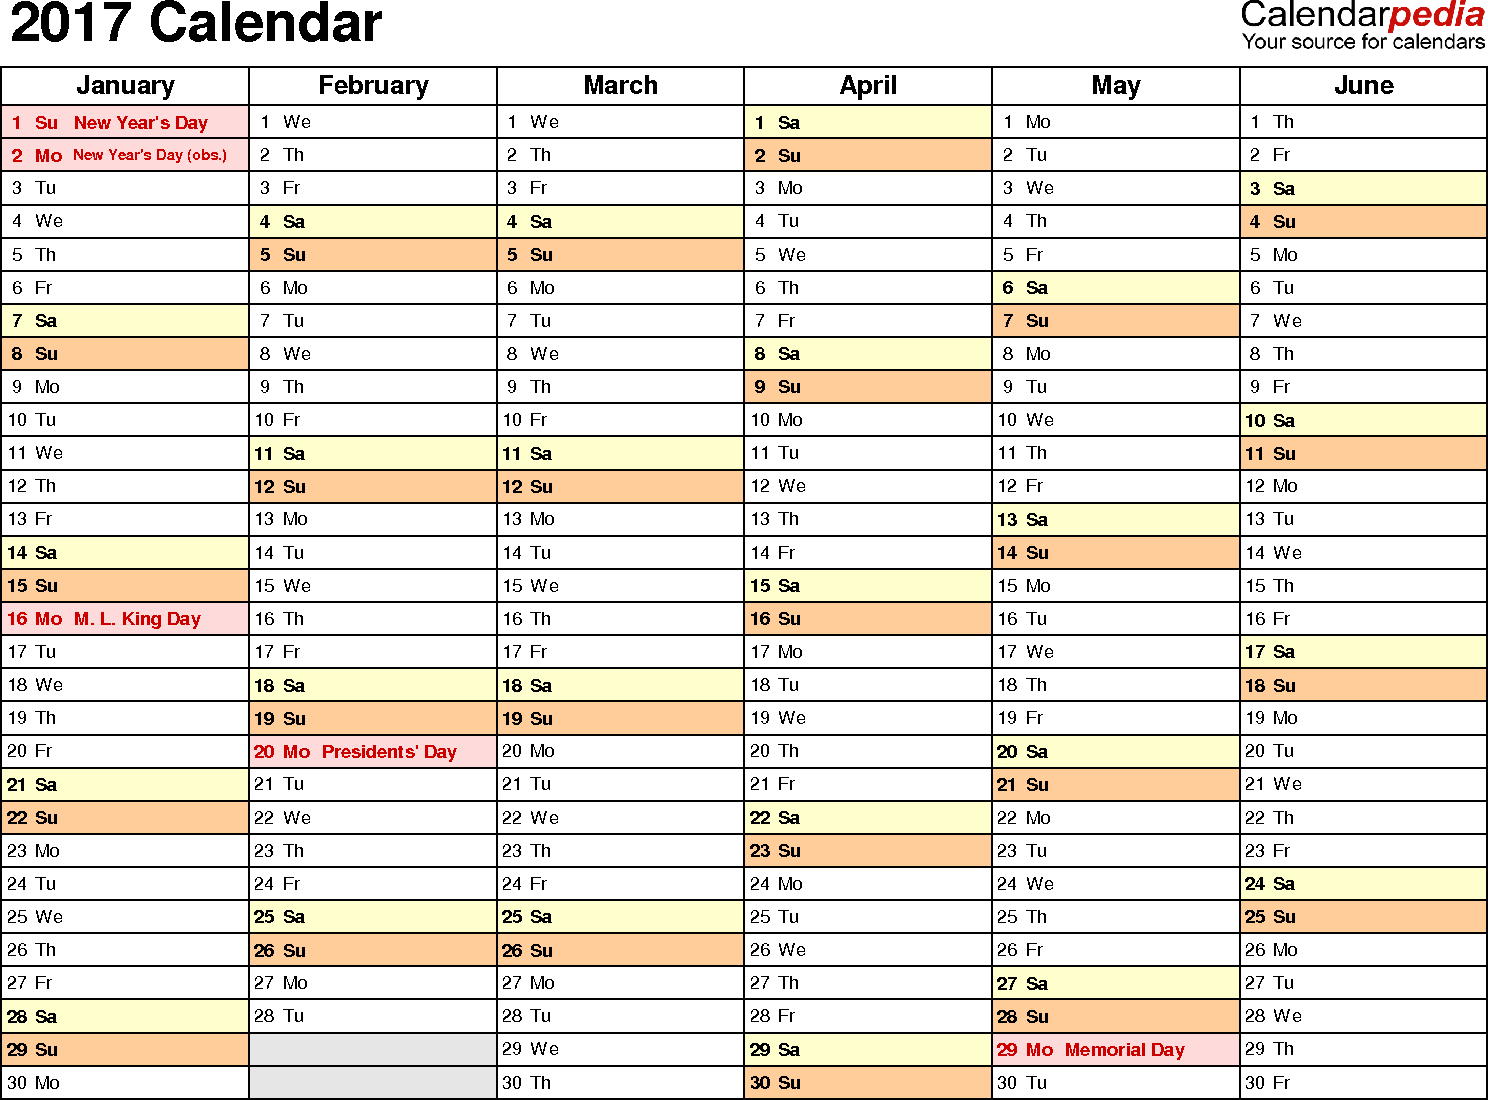 Ediblewildsus  Outstanding  Calendar Excel  My Cms With Fair Template   Calendar For With Attractive Power Pivot Add In For Excel  Also Excel Match  Columns In Addition Python Excel Library And Analyse Data Using Excel As Well As Copy And Paste Formulas In Excel Additionally What Is Power Query For Excel From Abefendicafecom With Ediblewildsus  Fair  Calendar Excel  My Cms With Attractive Template   Calendar For And Outstanding Power Pivot Add In For Excel  Also Excel Match  Columns In Addition Python Excel Library From Abefendicafecom